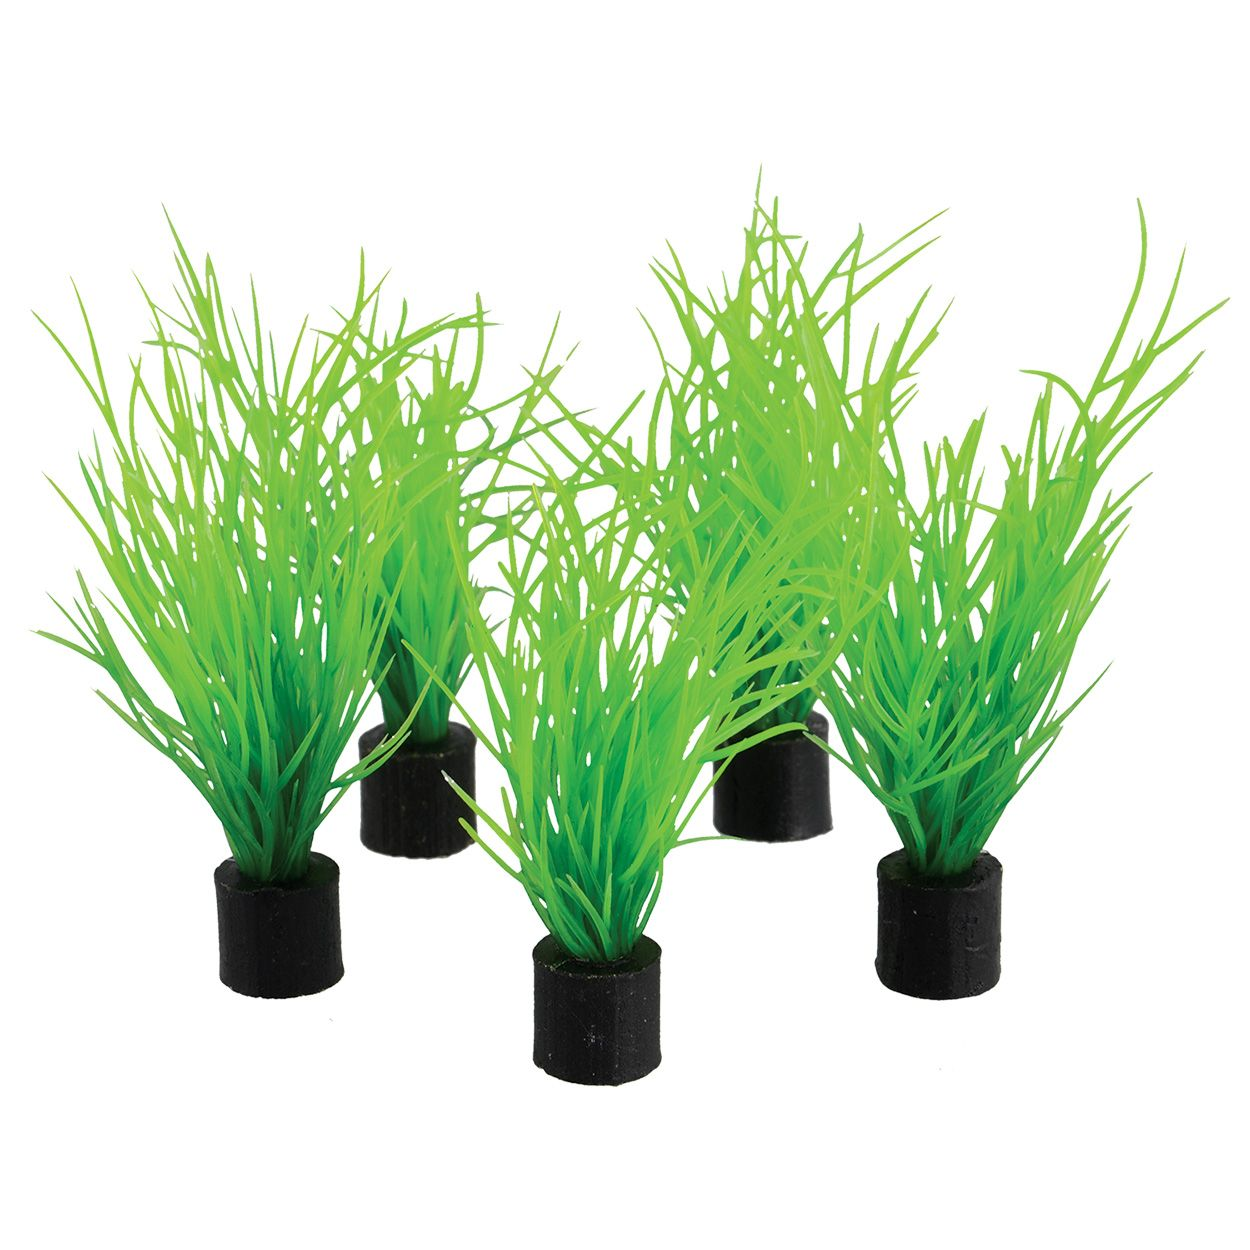 Underwater Treasures Bog Grass Mini Plant - 3 inch (5 pk)